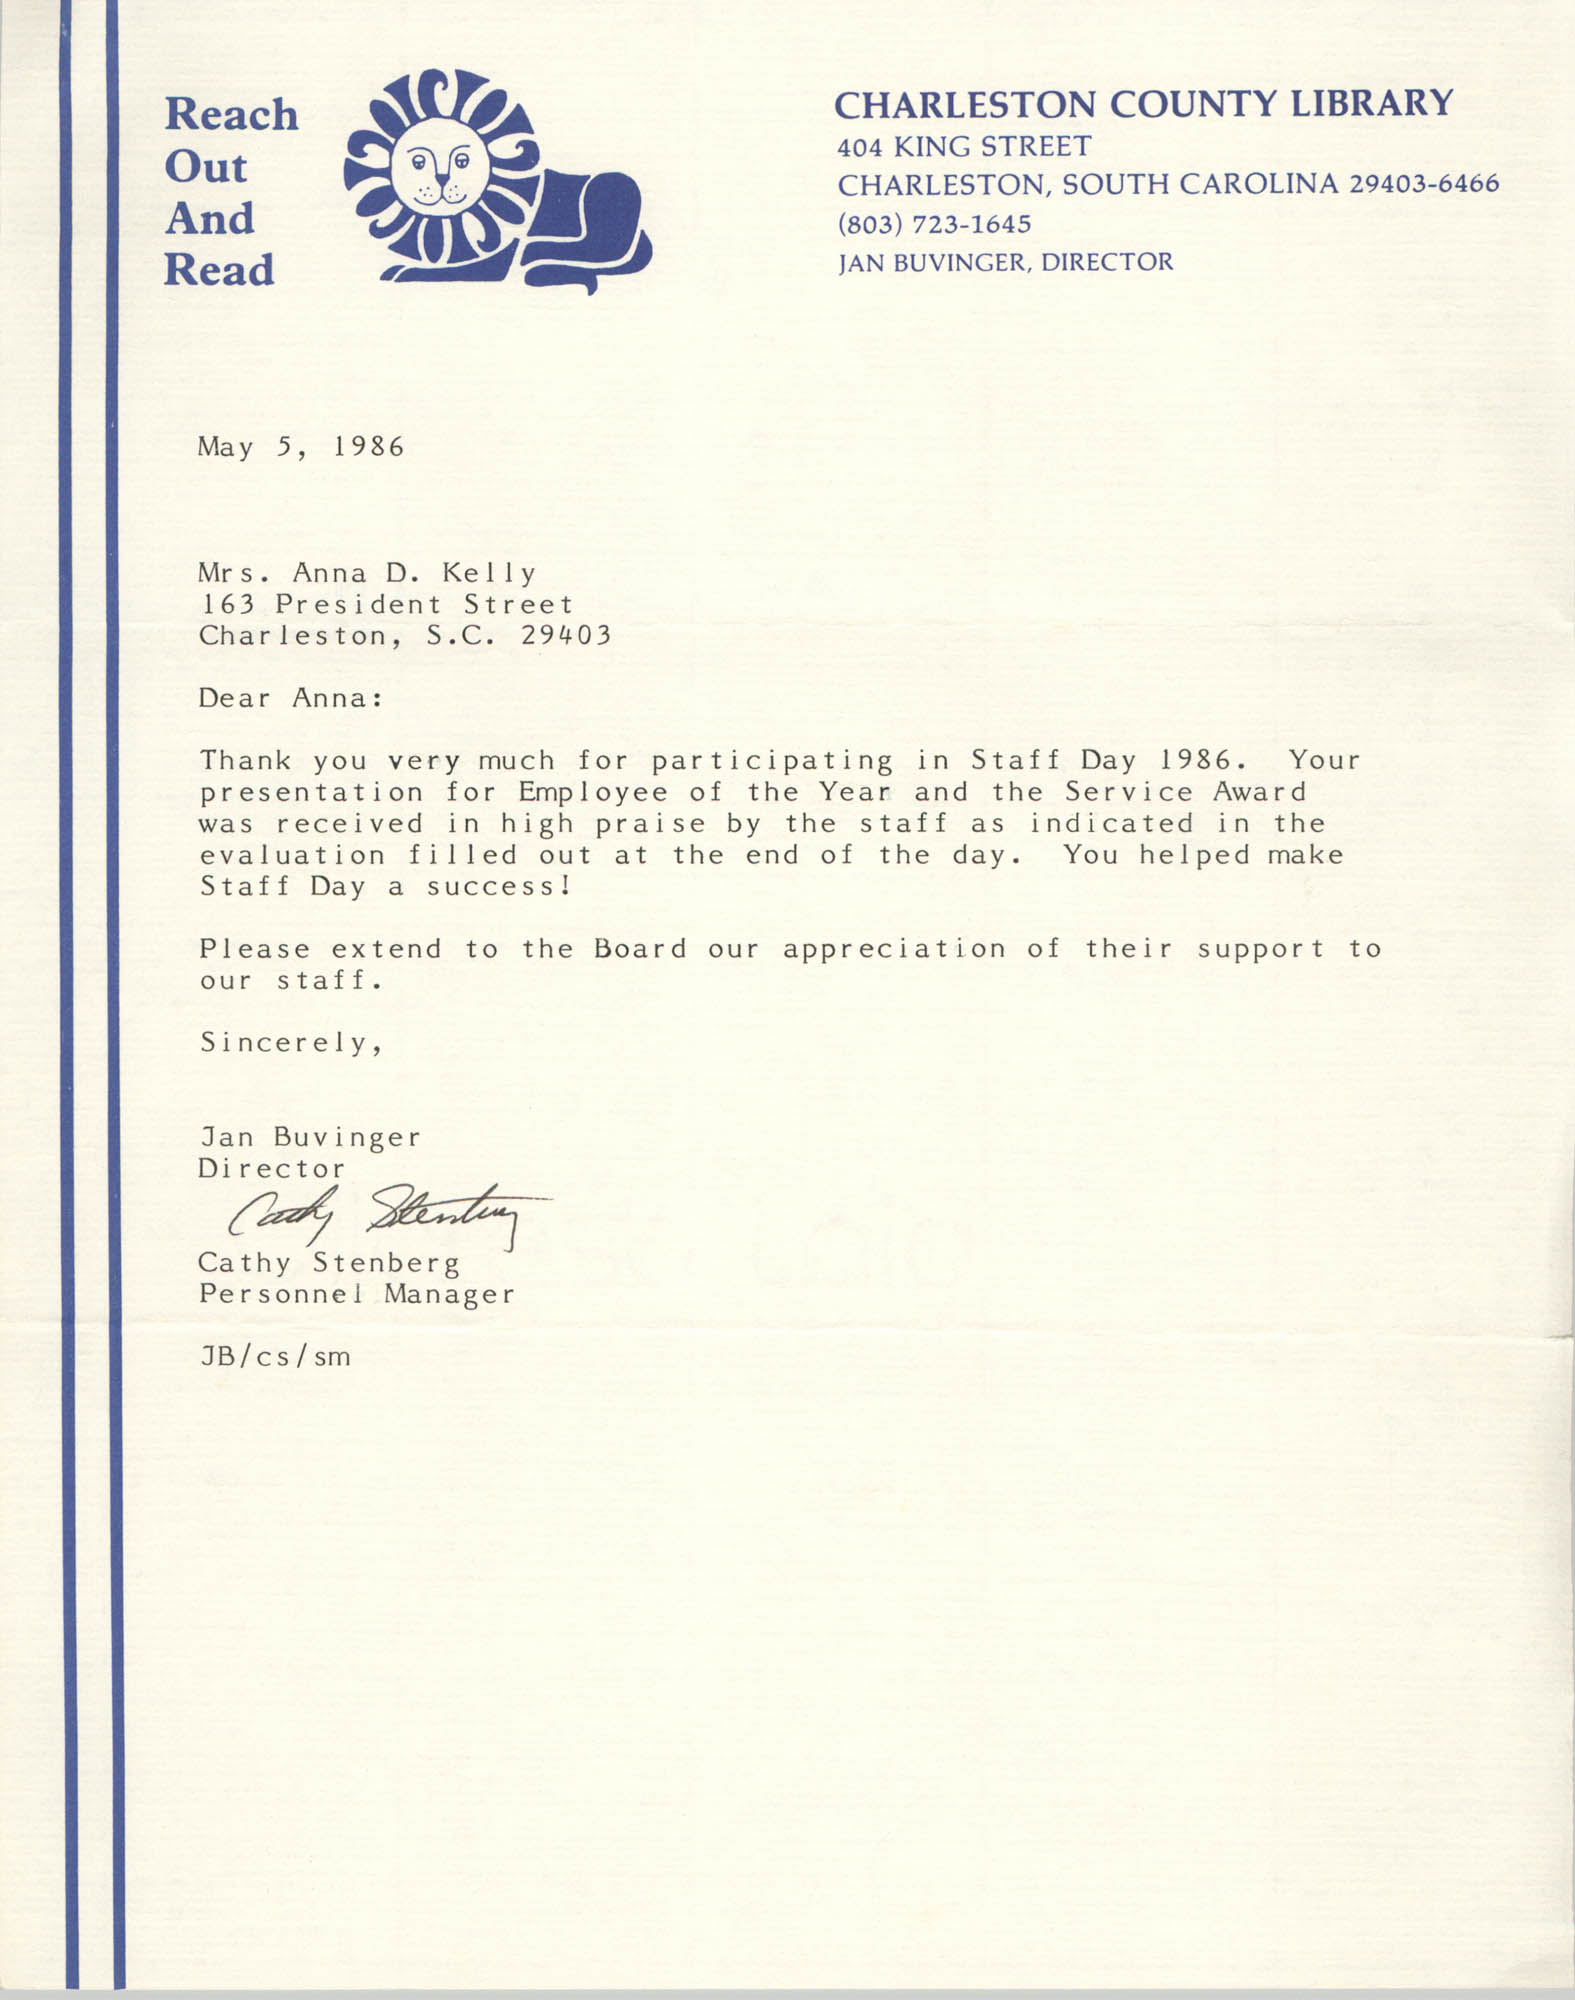 Letter from Cathy Stenberg to Anna D. Kelly, May 5, 1986